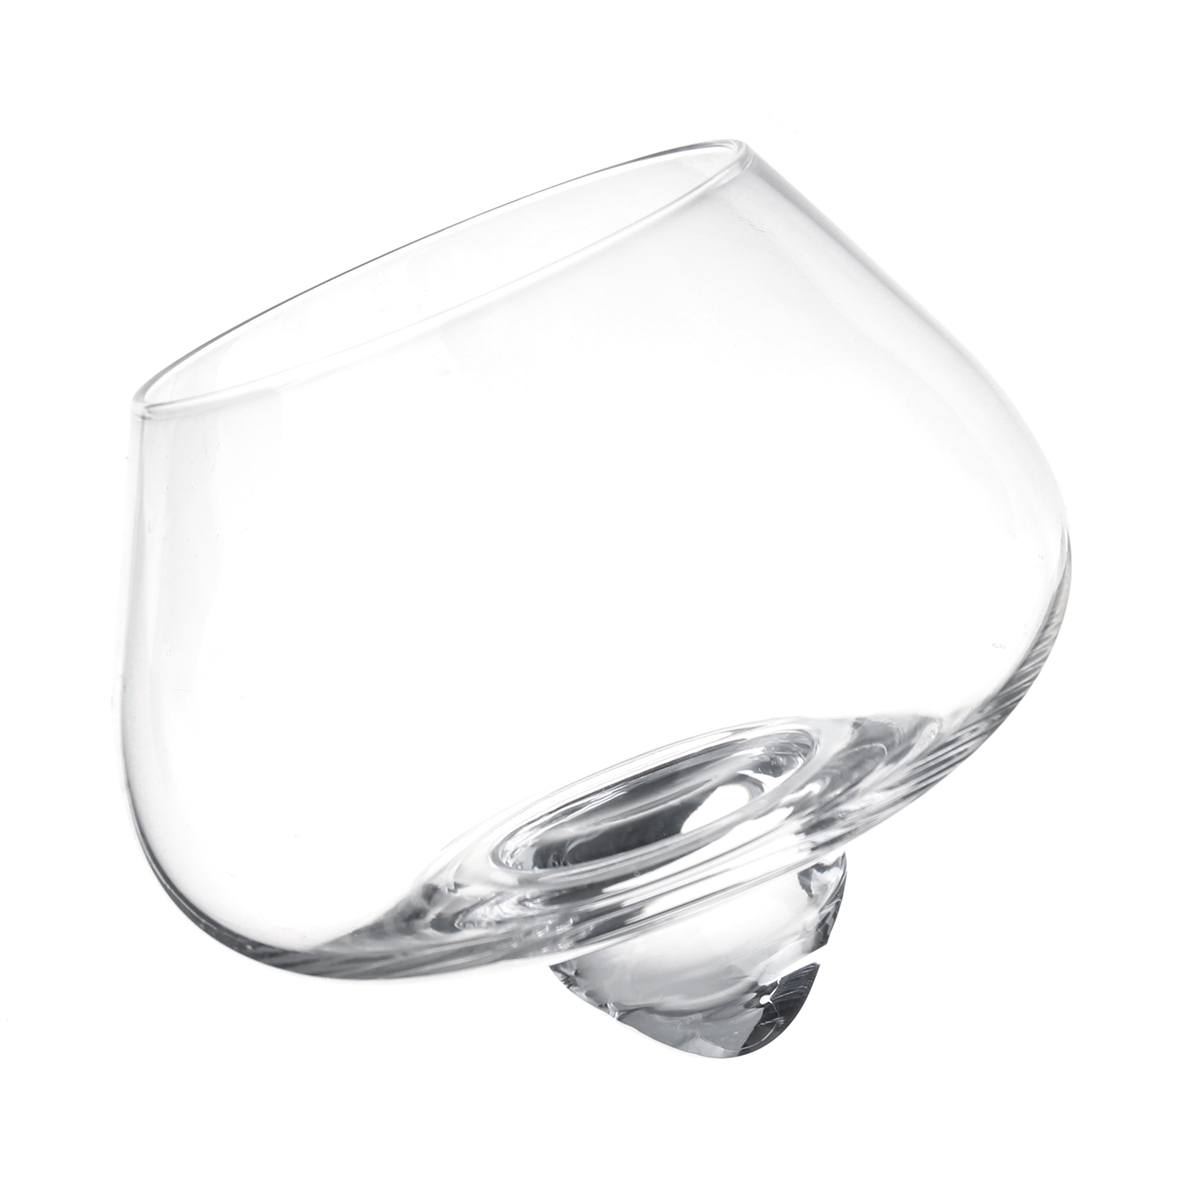 Elegant Crystal Wine Glass Cup Whiskey Drinking Tumbler Cocktail Wine Glass Gift Home Decor